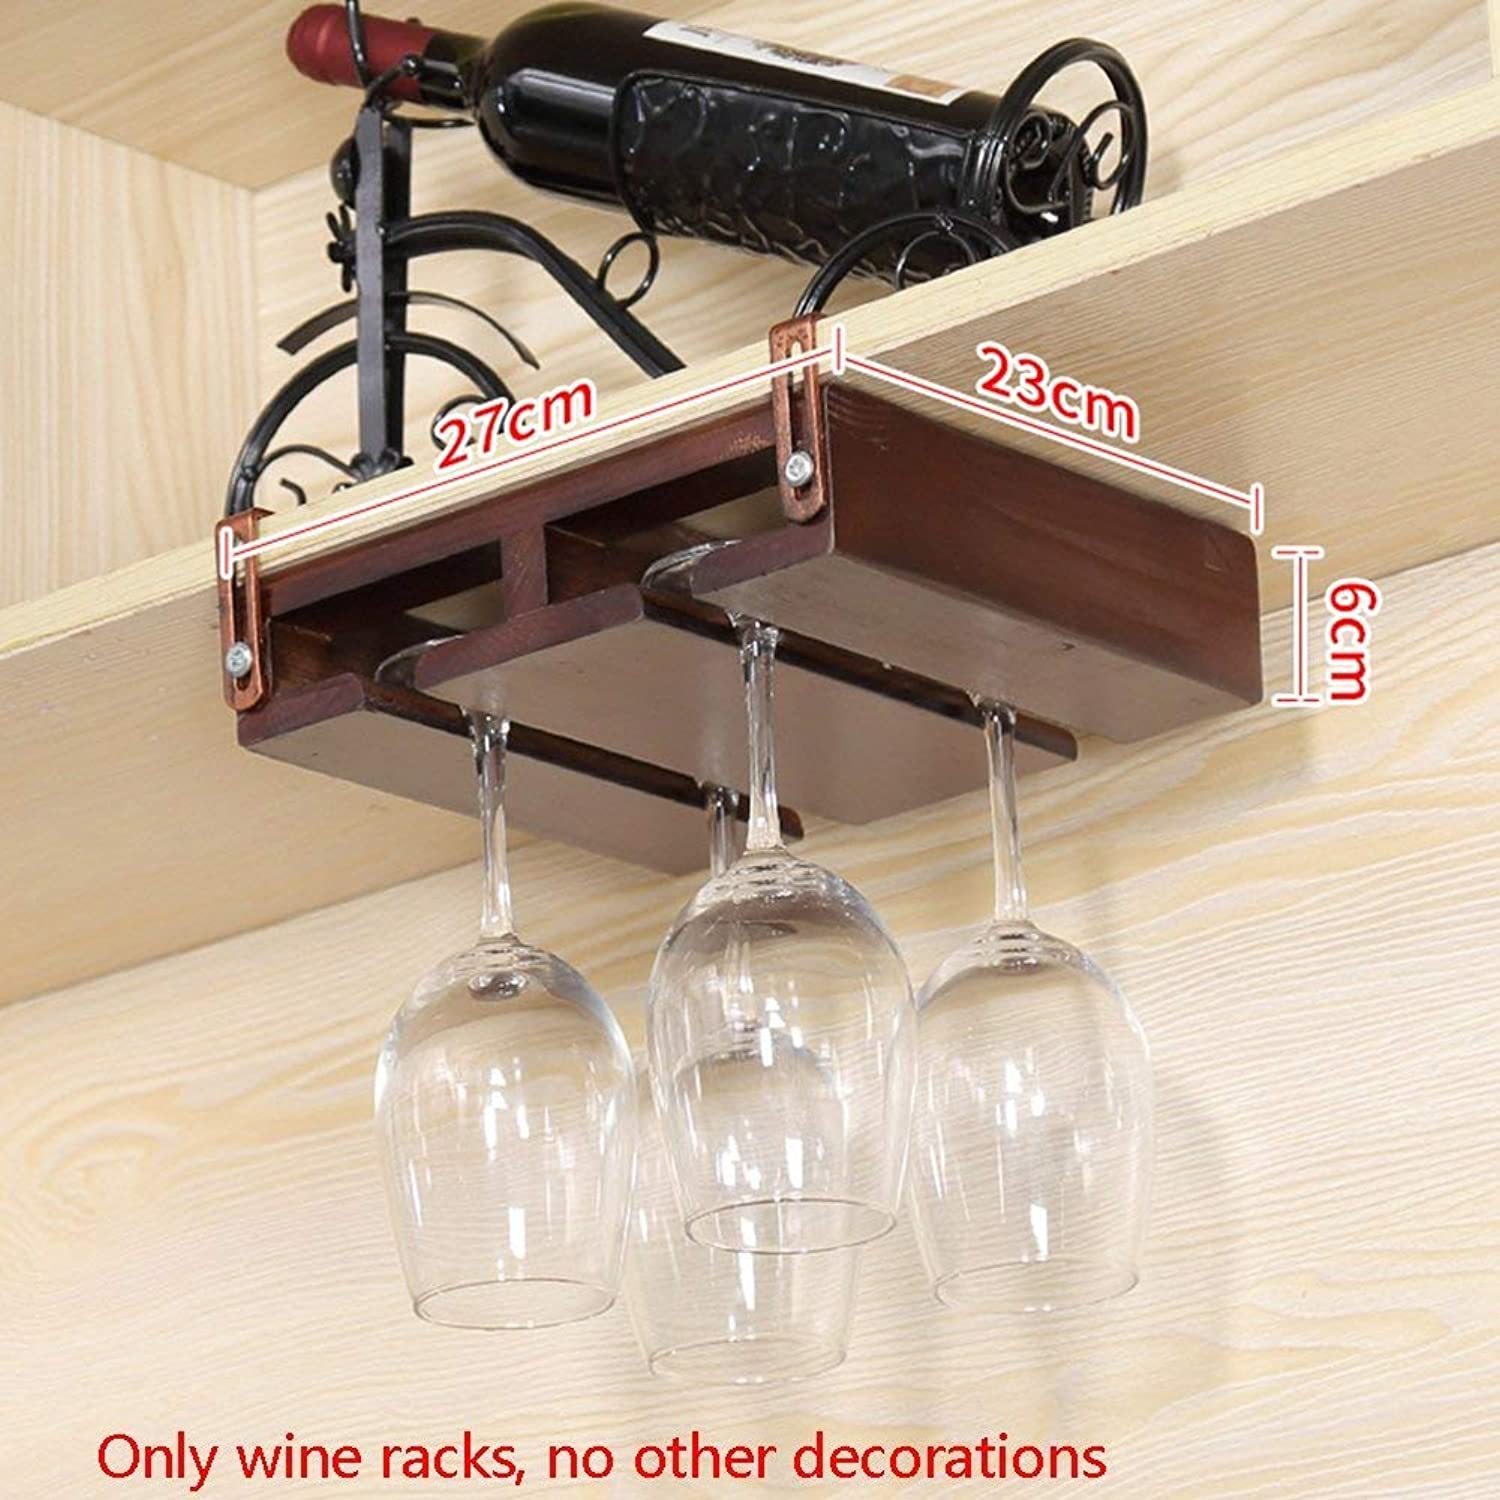 Red Wine Shelf Wine Racks Nail-Free Solid Wood Red Wine Glass Holder Upside Down Suspension Wine Cup Holder High Cup Holder Household Wine Cabinet Hanging Cup Holder (Size   27  23  6cm)